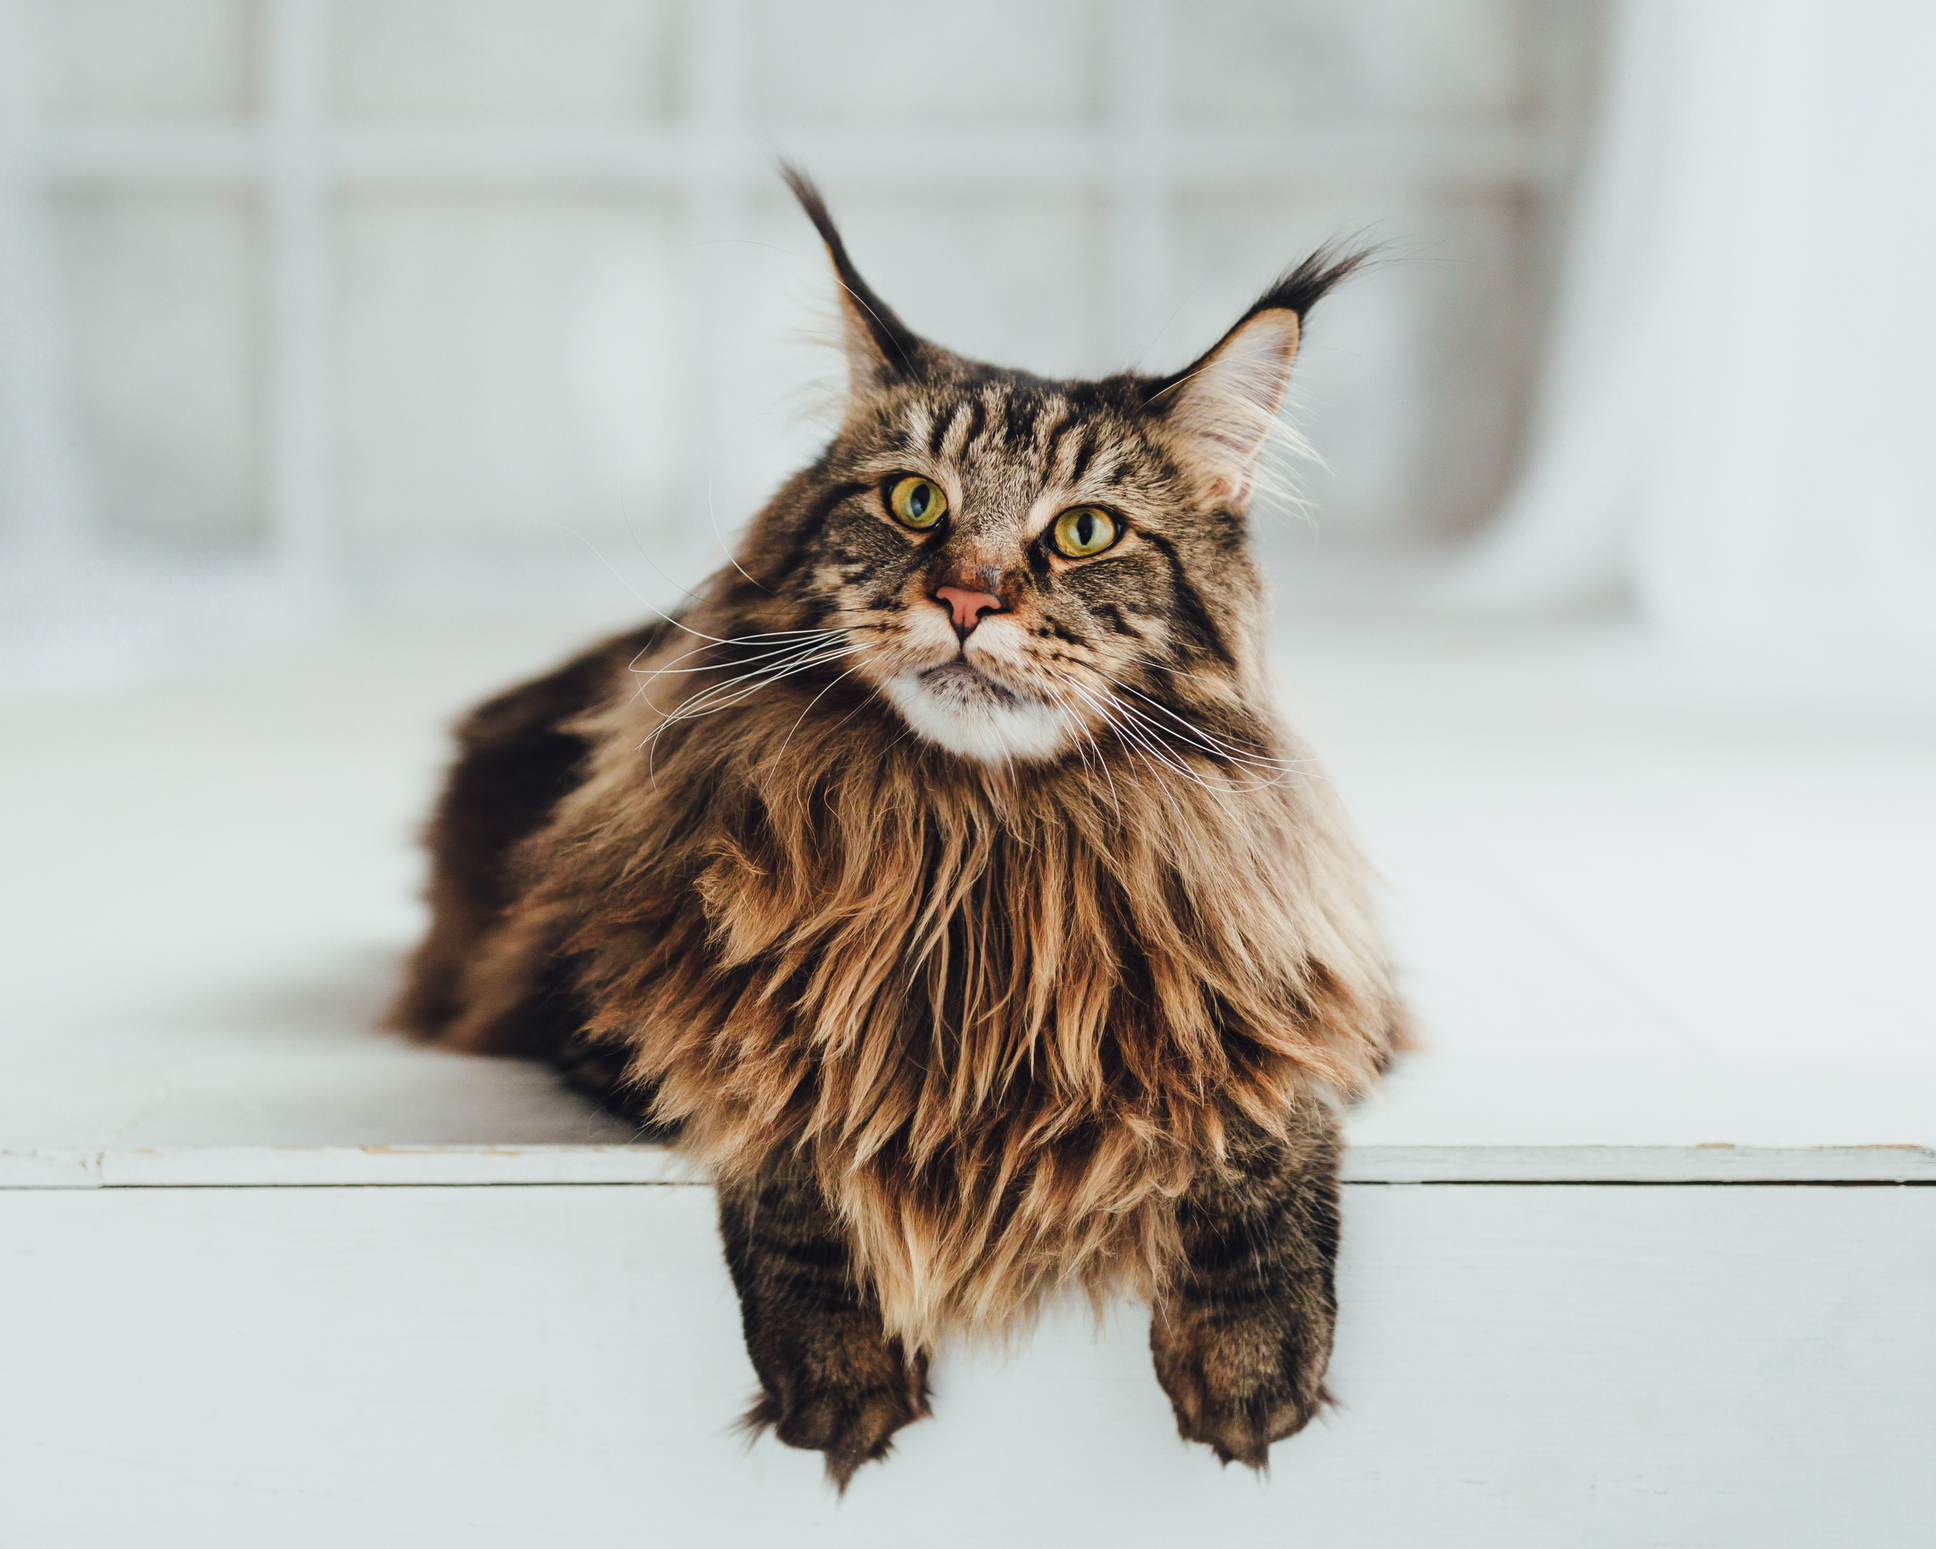 Maine Coon cat on white background, close-up view